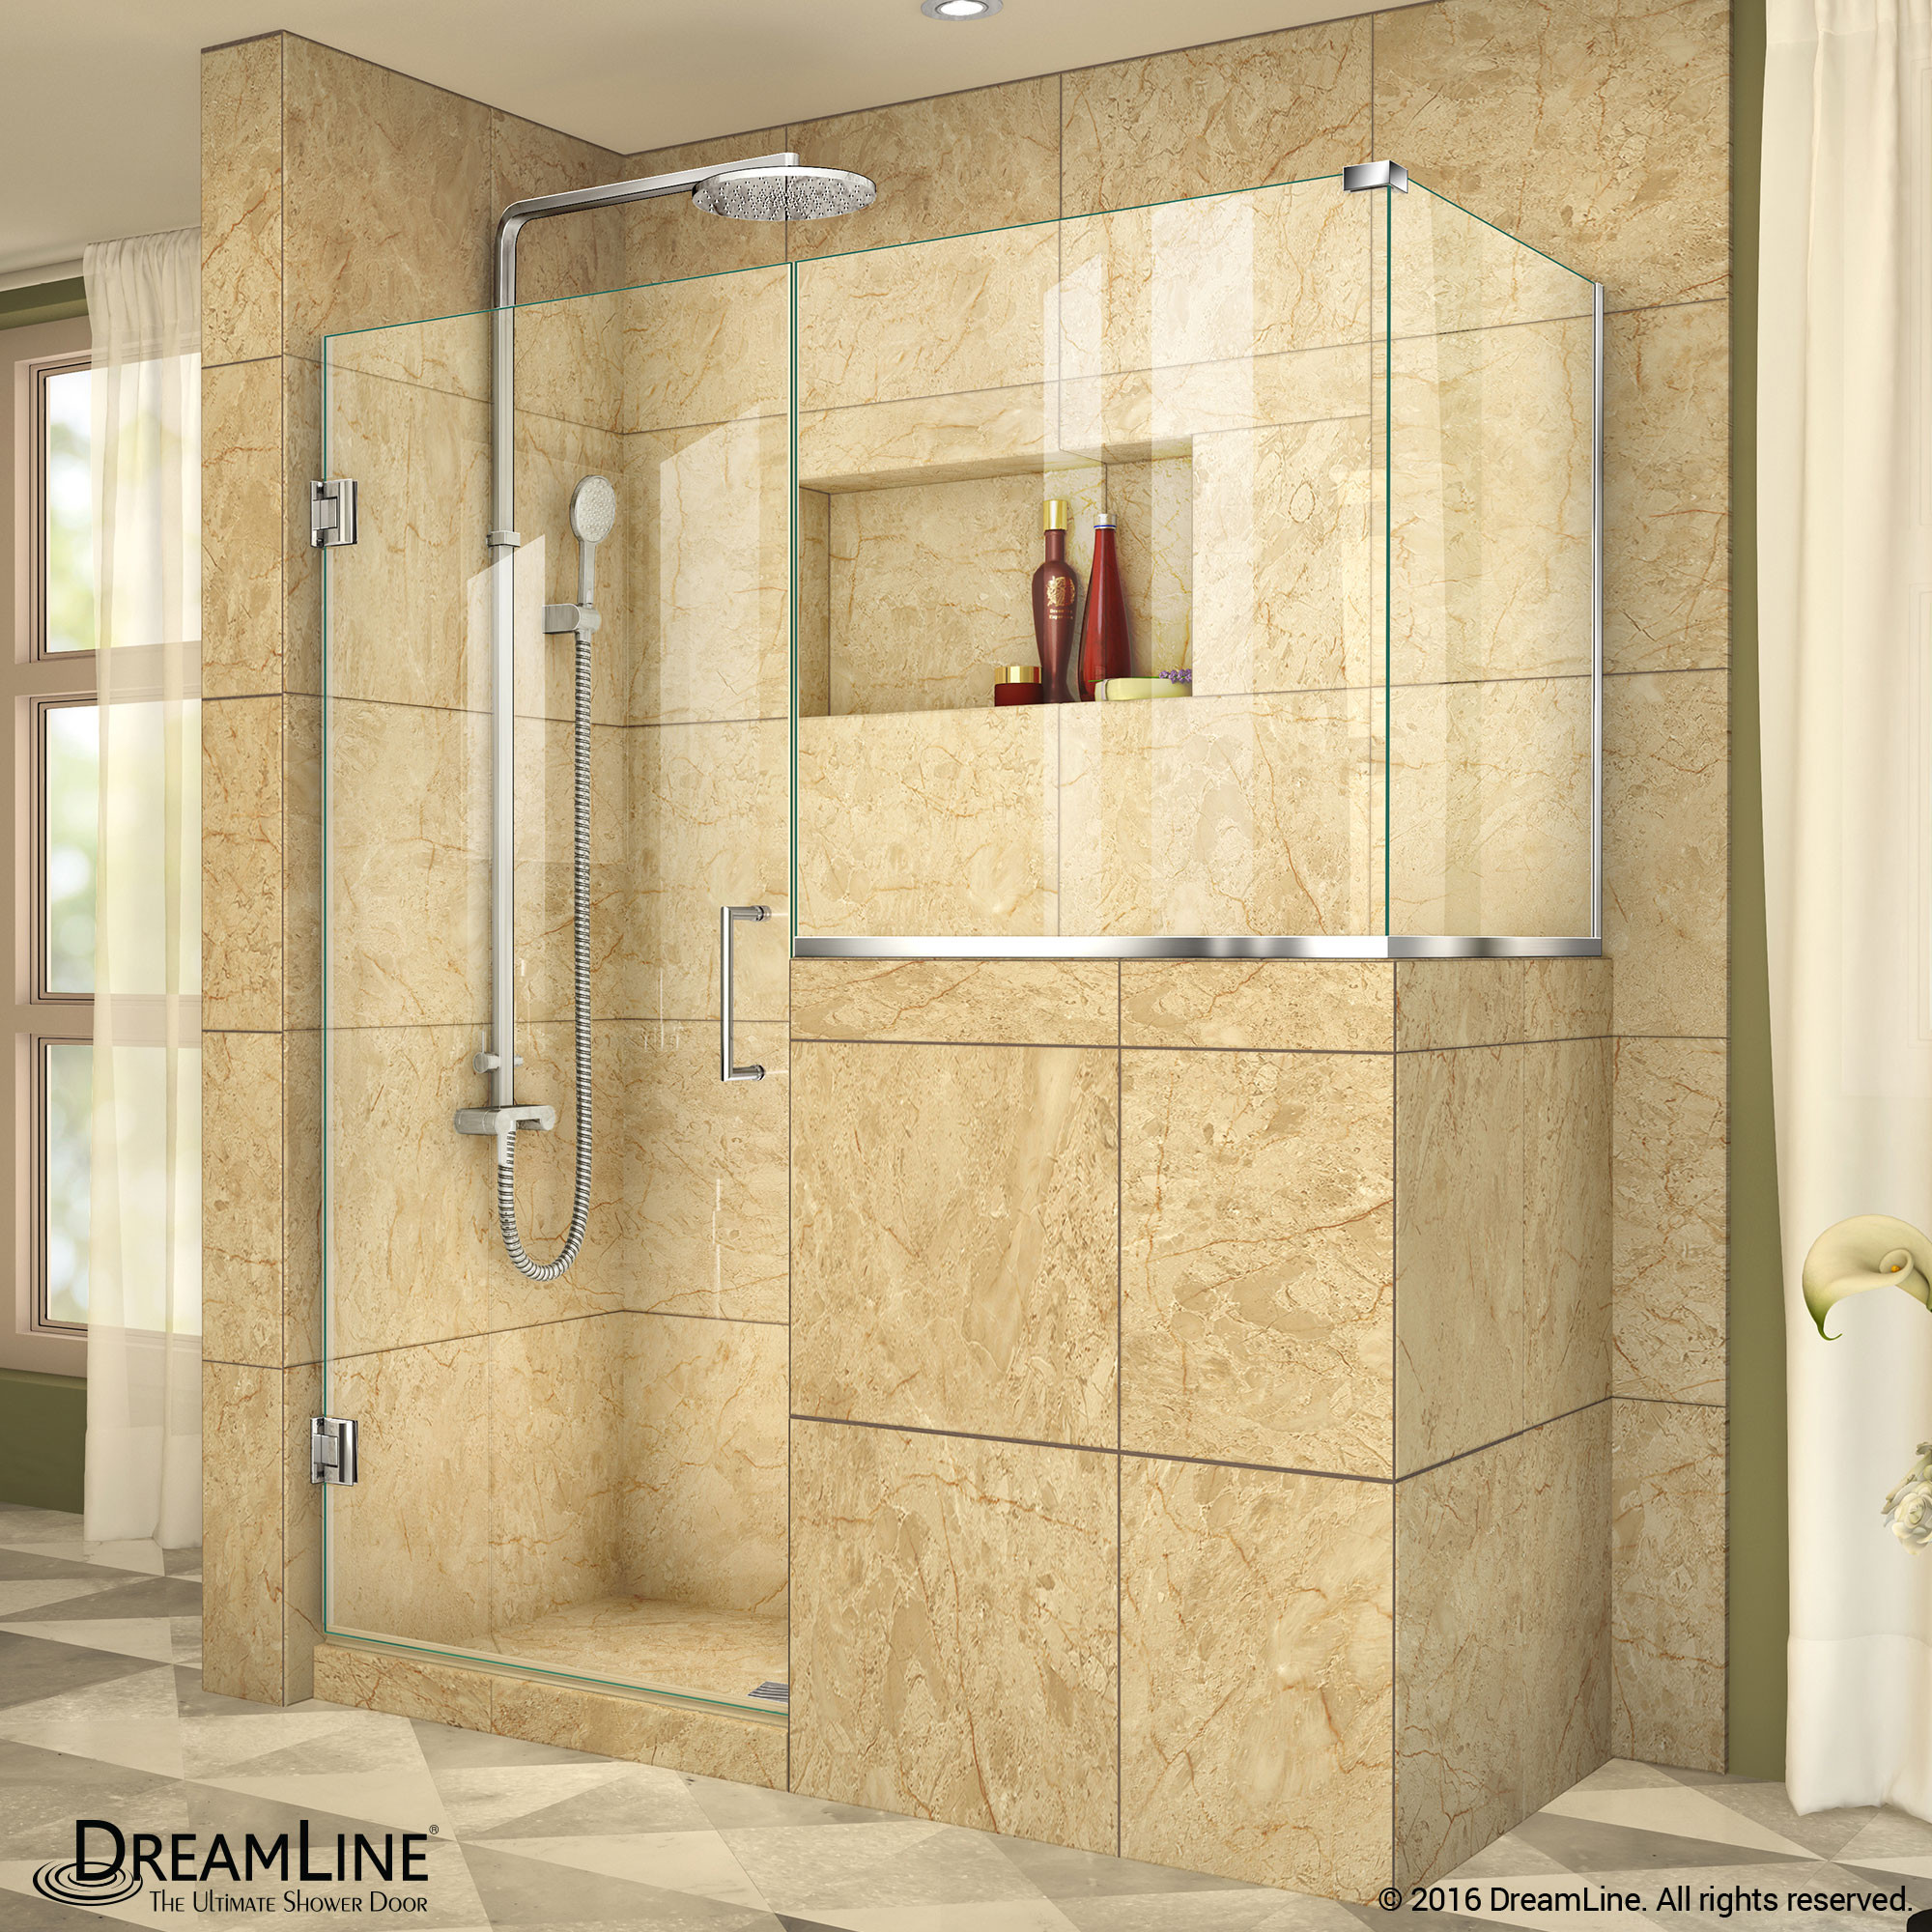 "DreamLine SHEN-2427303636-01 Unidoor Plus 57 x 36.375 x 72"" Hinged Shower Enclosure In Chrome Finish"